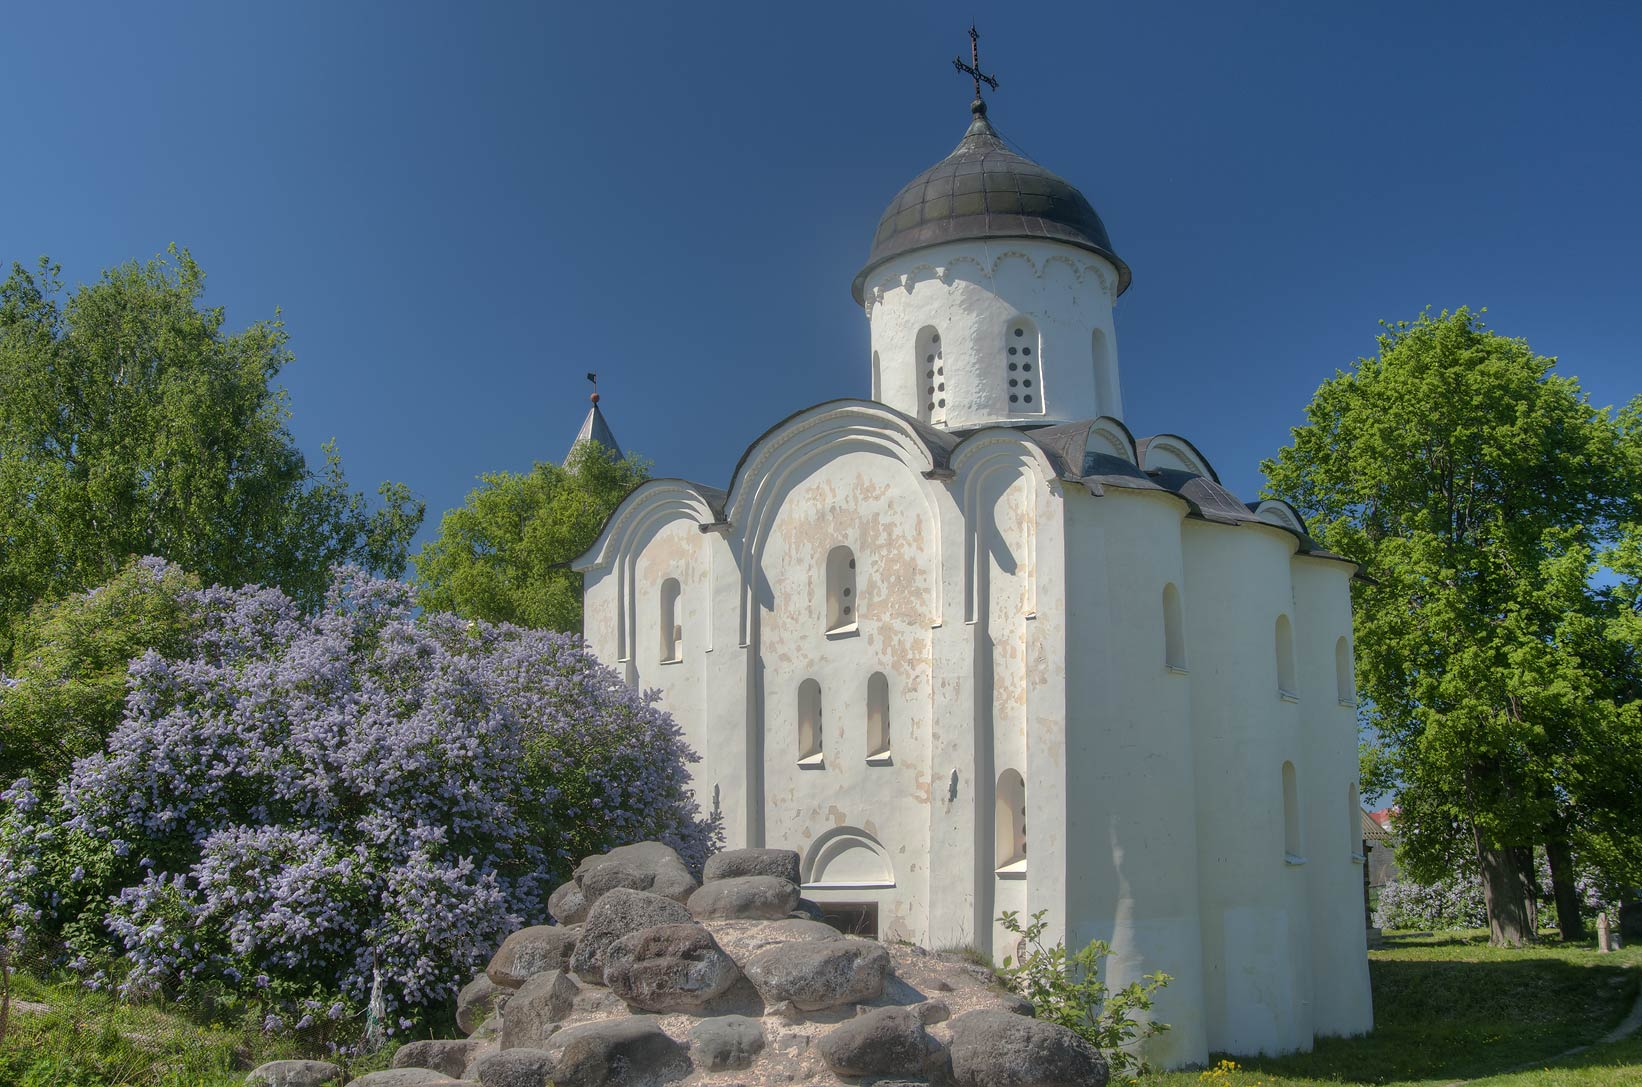 St.George's Cathedral in Old (Staraya) Ladoga...east from St.Petersburg, Russia